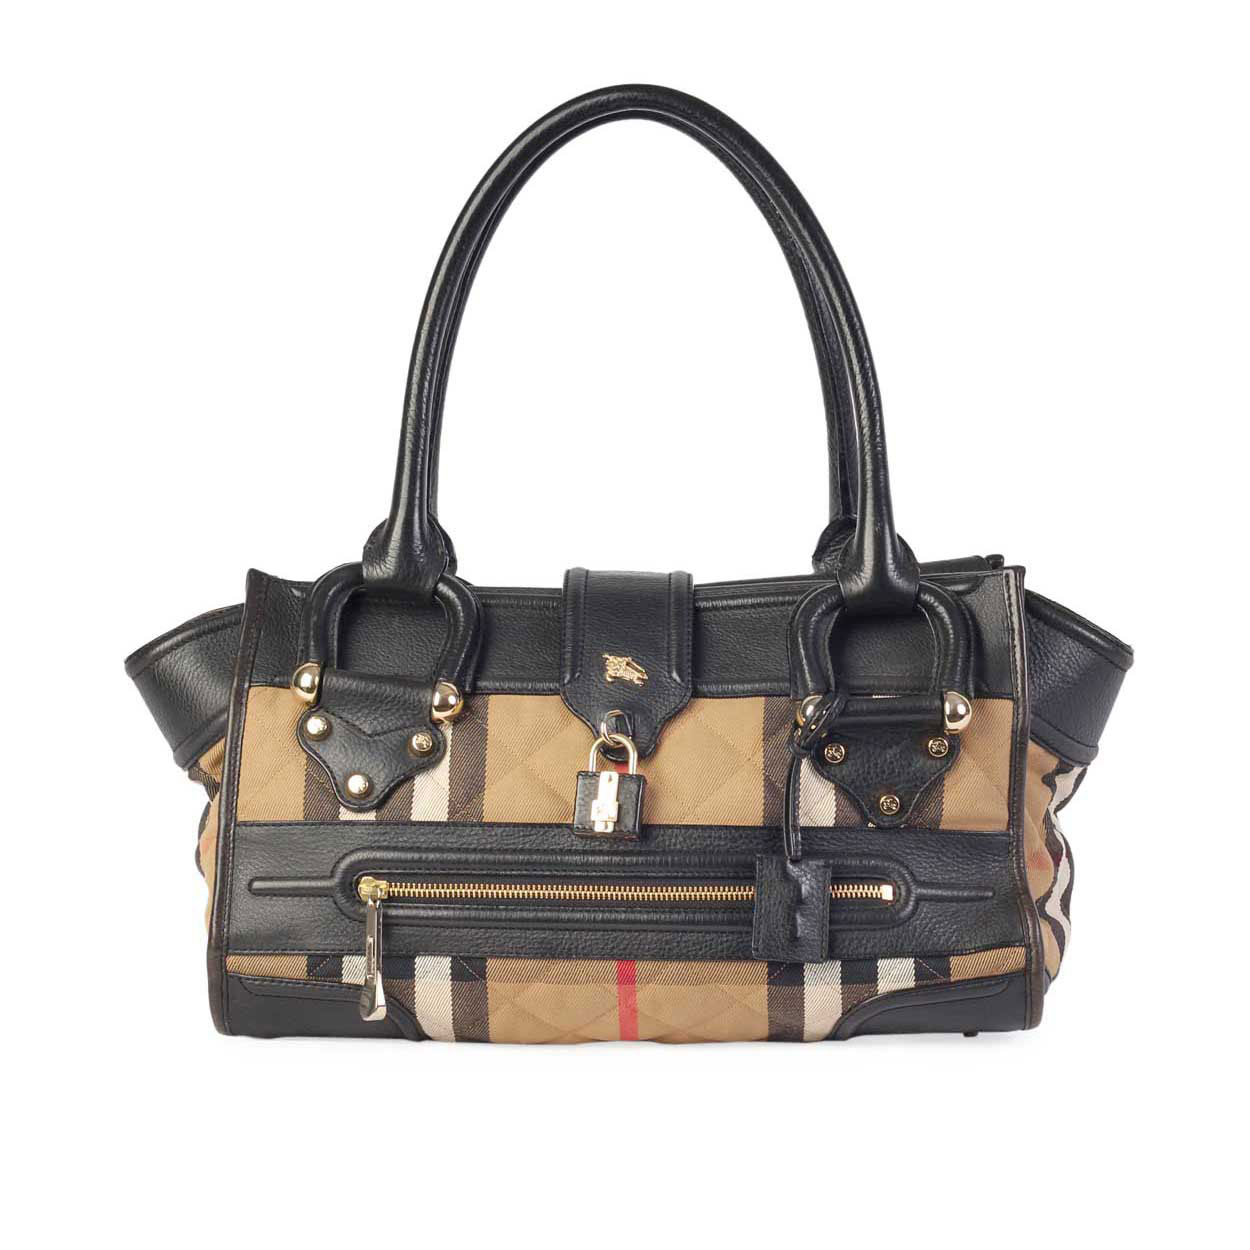 Burberry Quilted Handbags